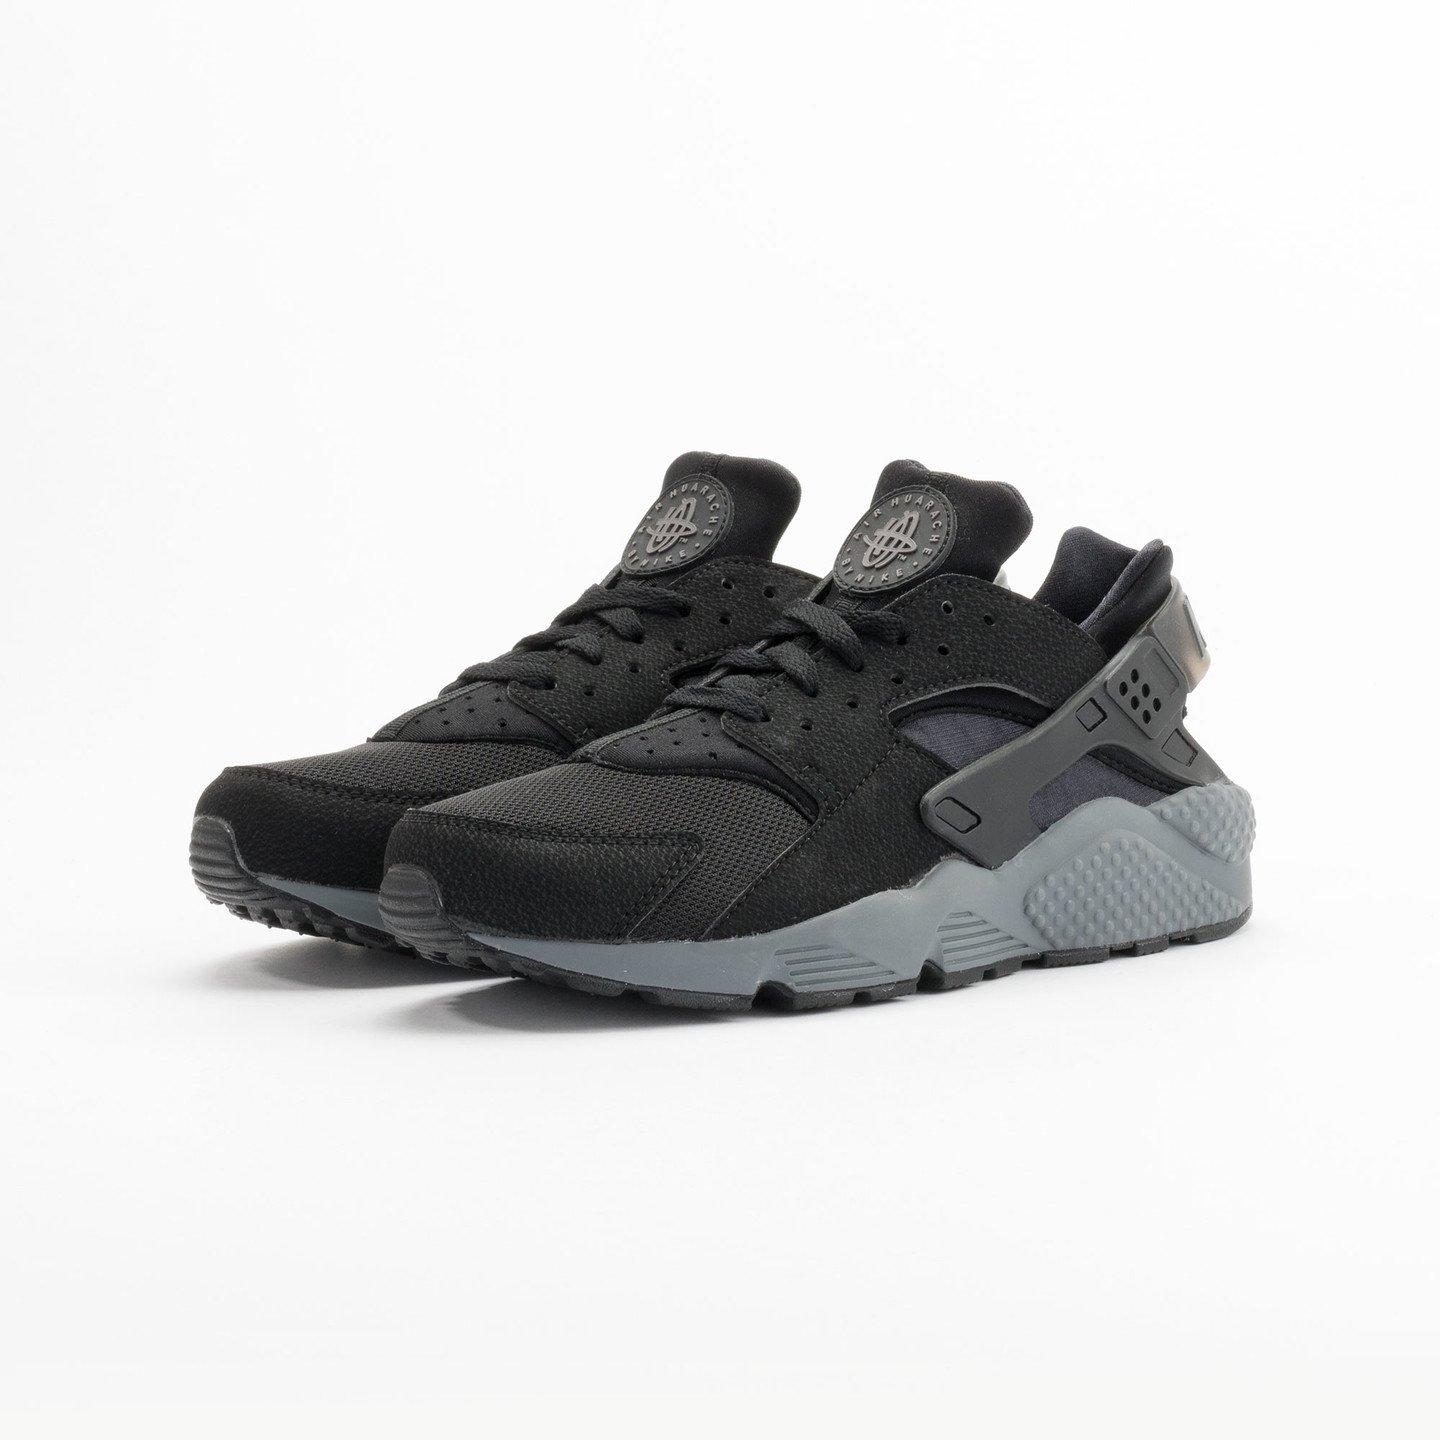 Nike Air Huarache Black / Dark Grey 318429-010-42.5